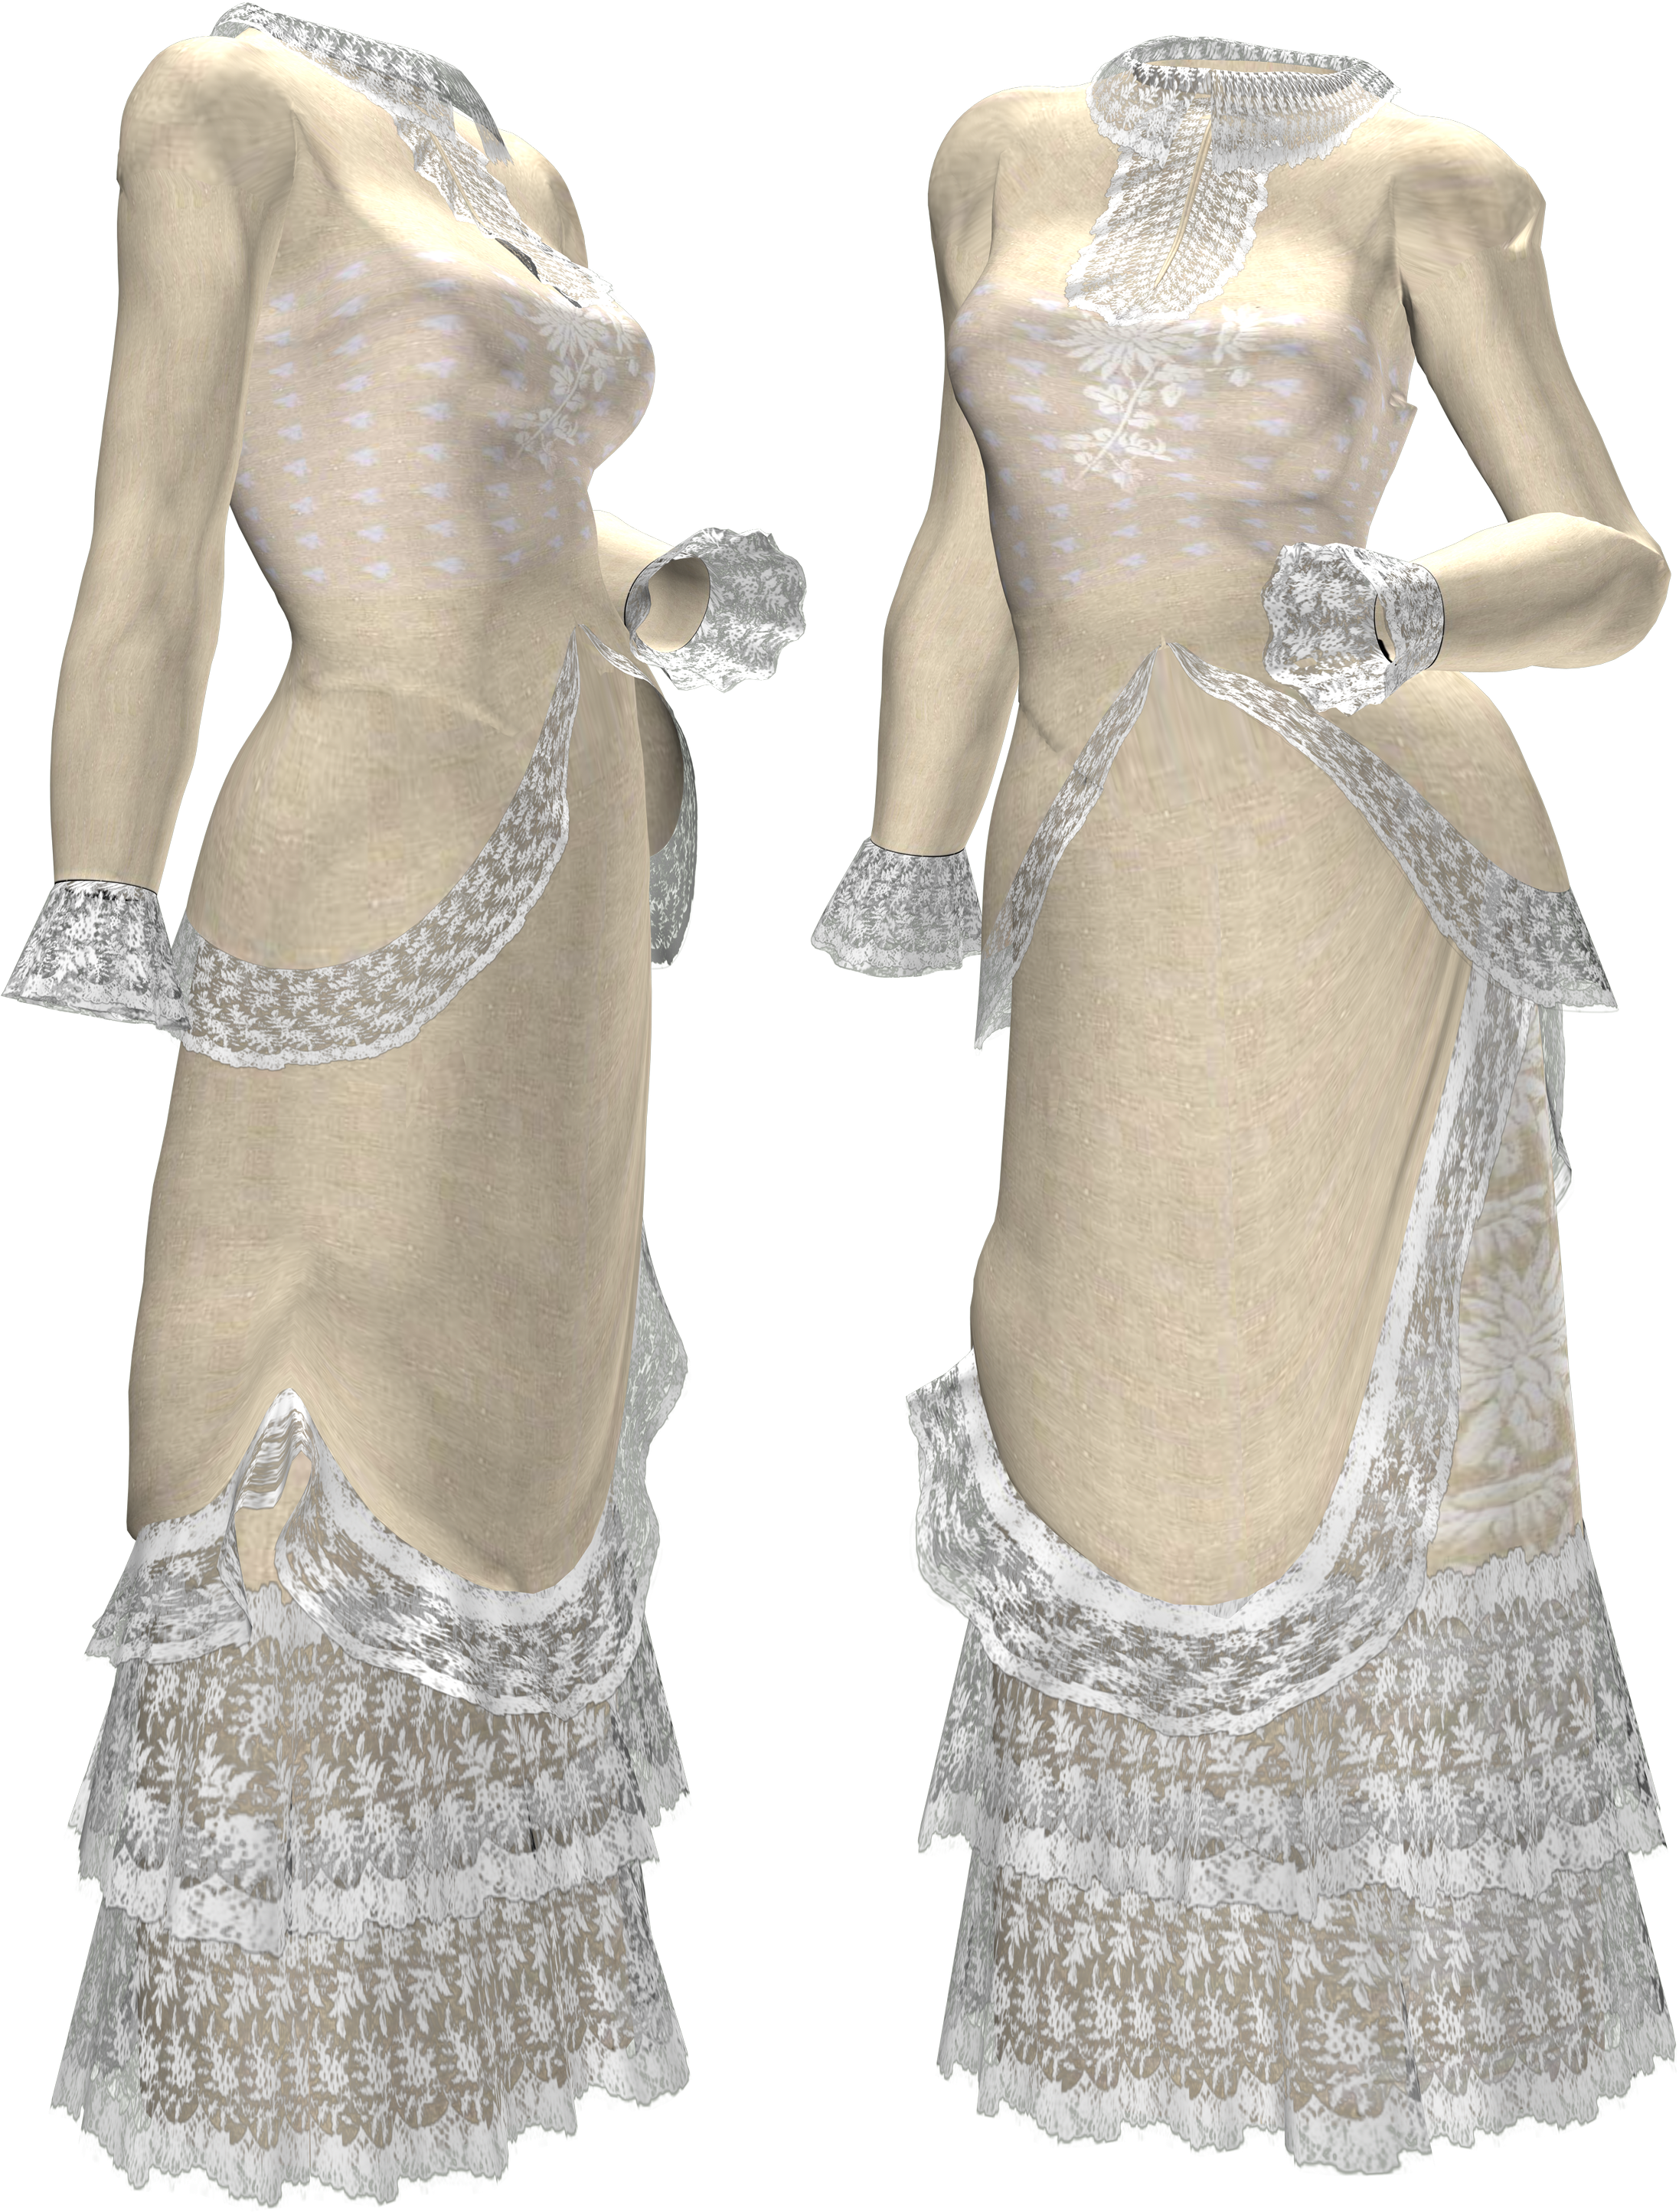 uploads dress dress PNG11 5